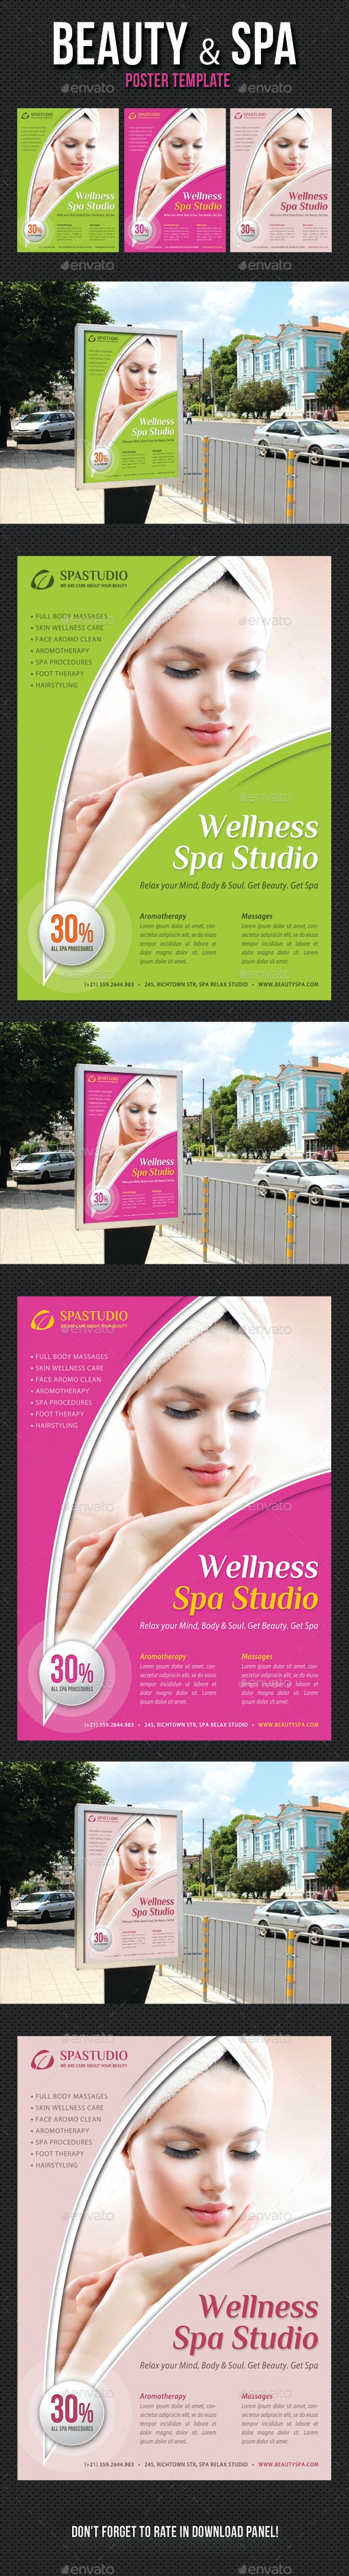 Beauty and Spa Poster Template V14 - Signage Print Templates